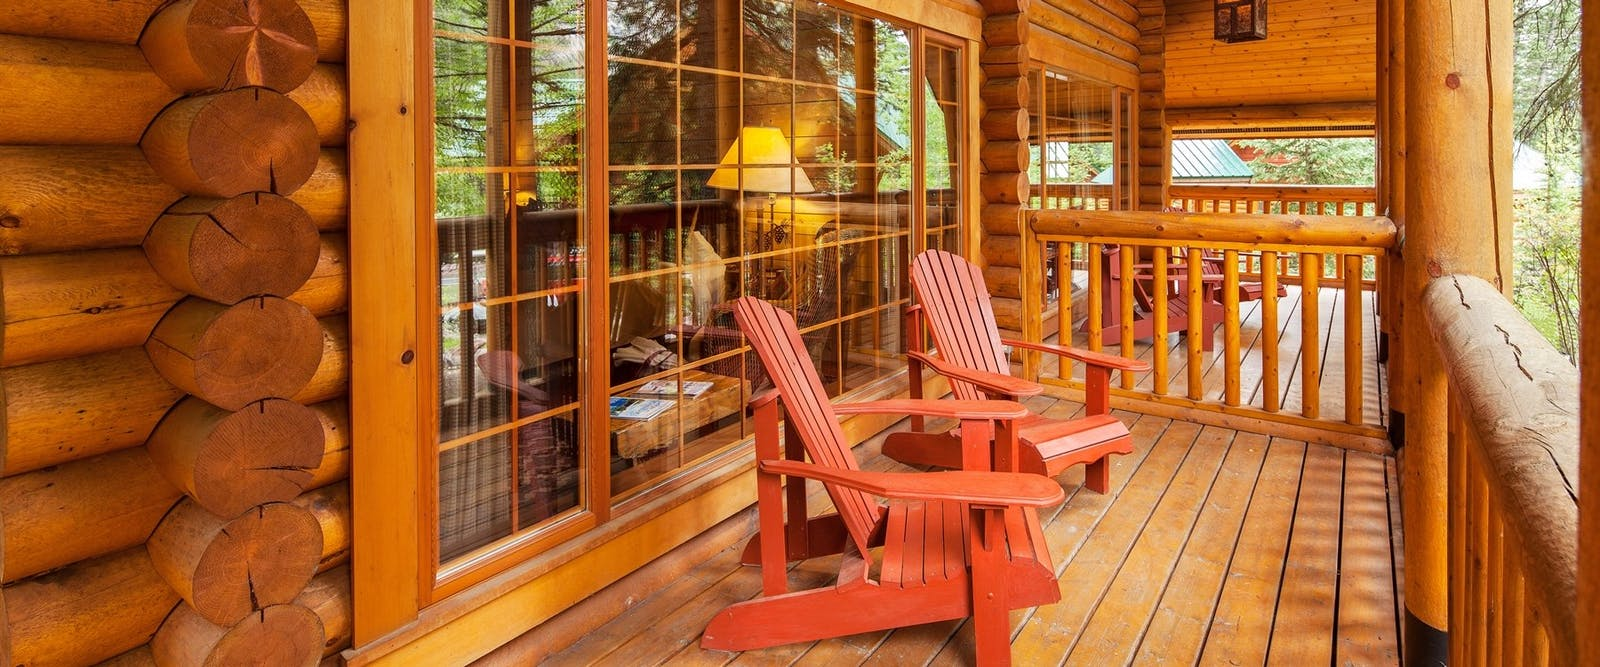 Lodge deck area at Cathedral Mountain Lodge, British Columbia